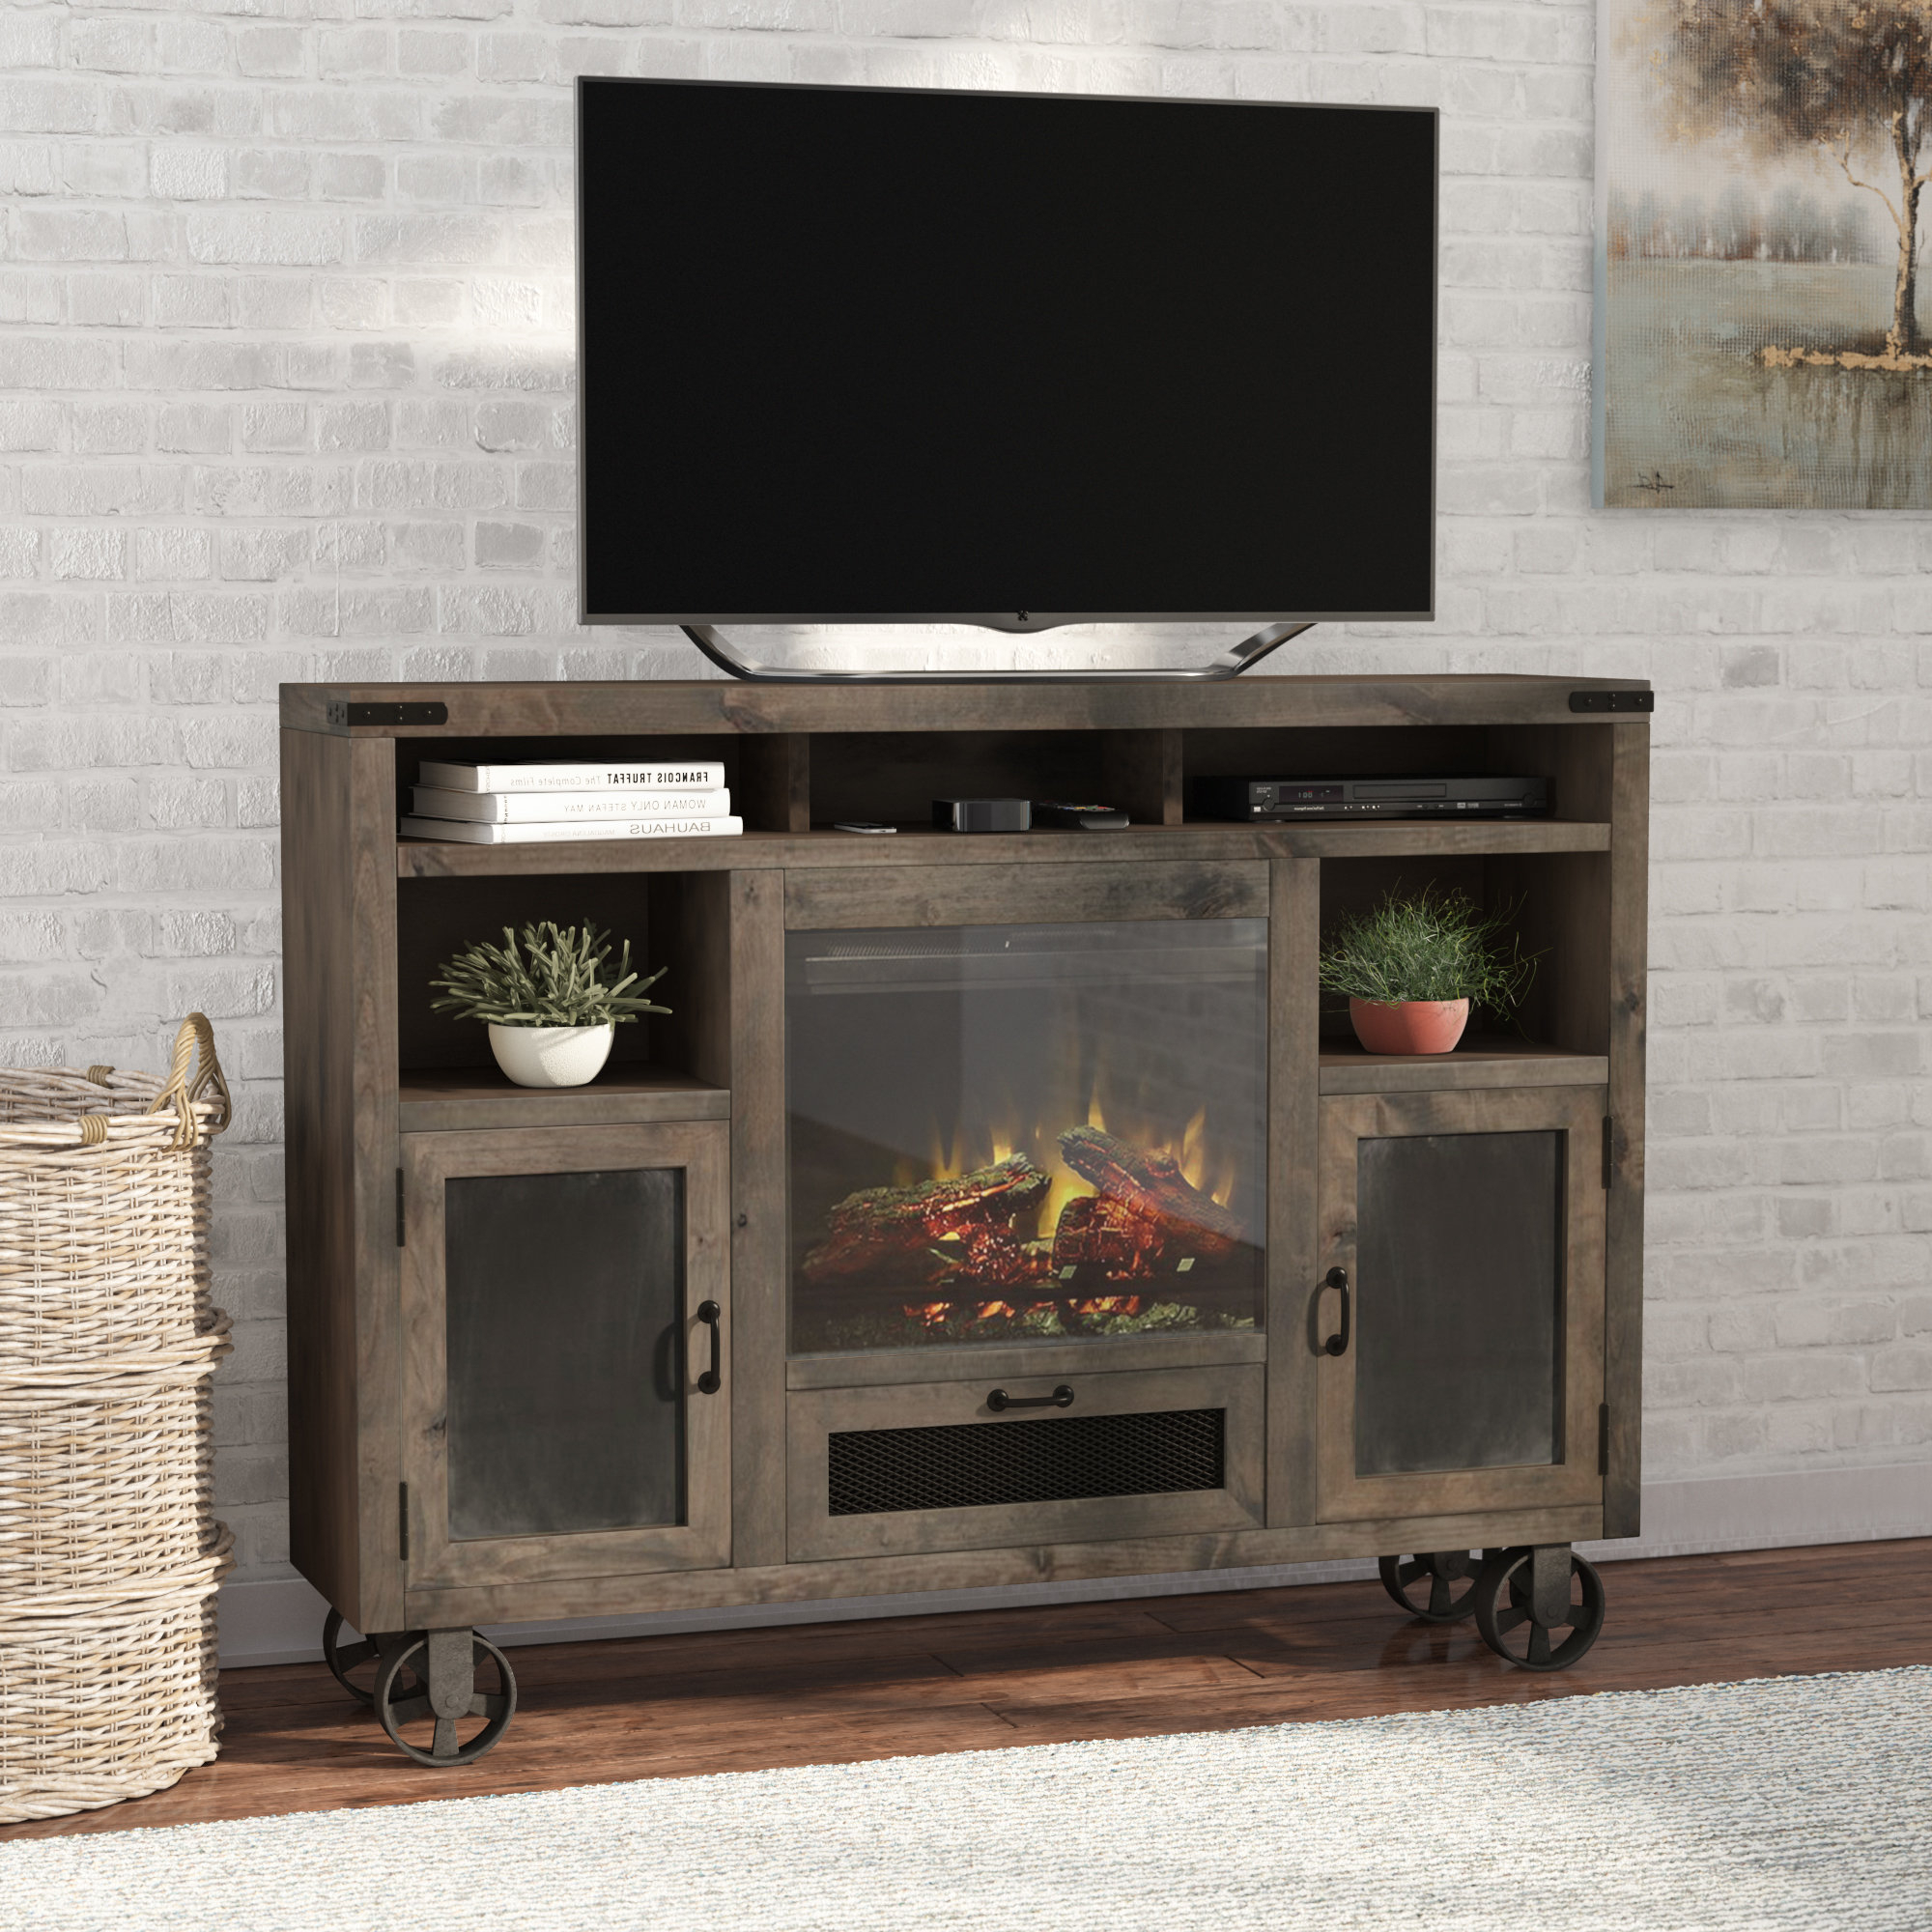 Wayfair Within Tv Stands And Bookshelf (View 15 of 20)